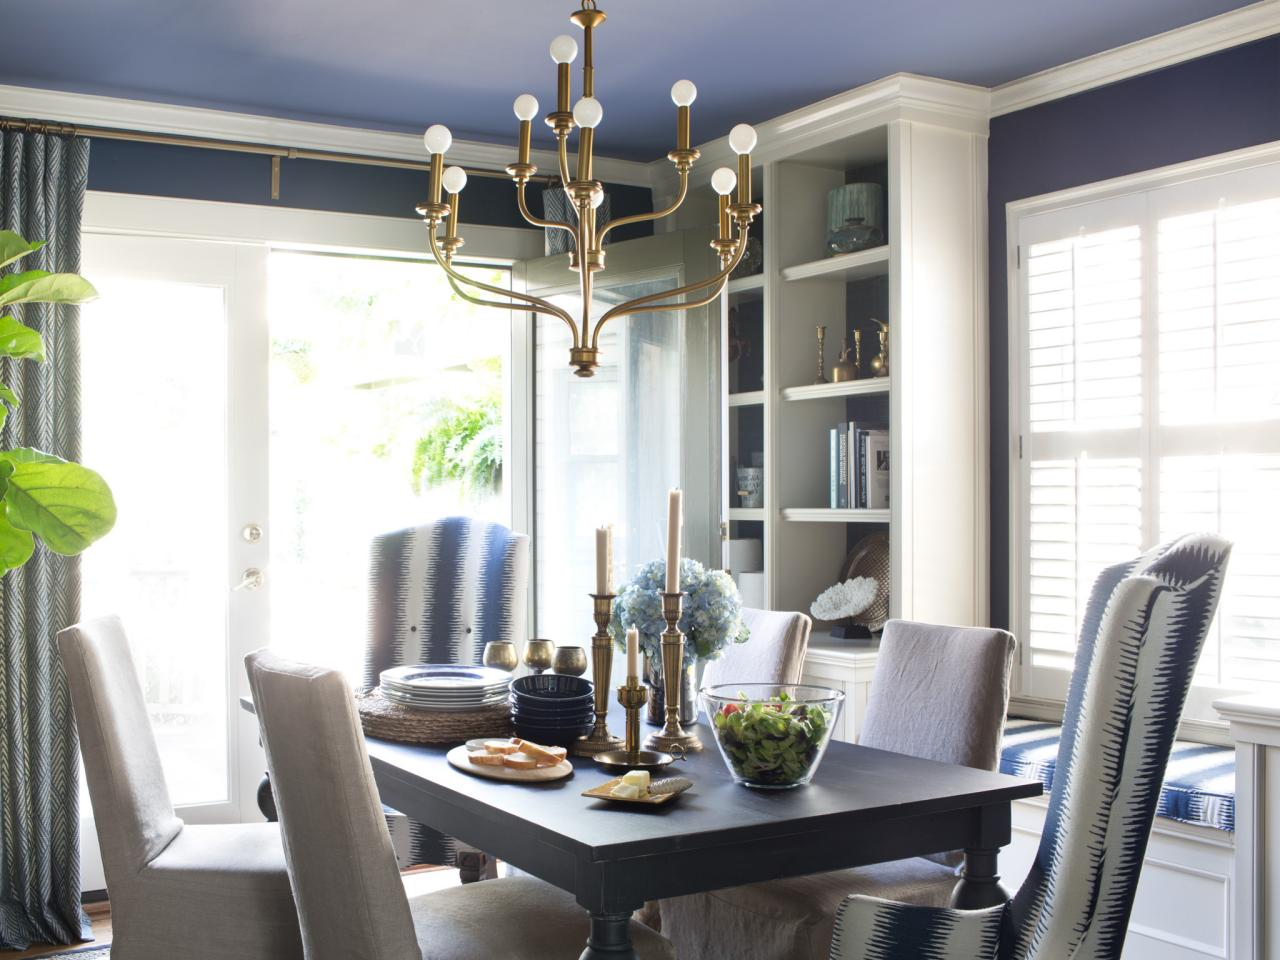 Best 15 Ways To Dress Up Your Dining Room Walls Hgtv S This Month